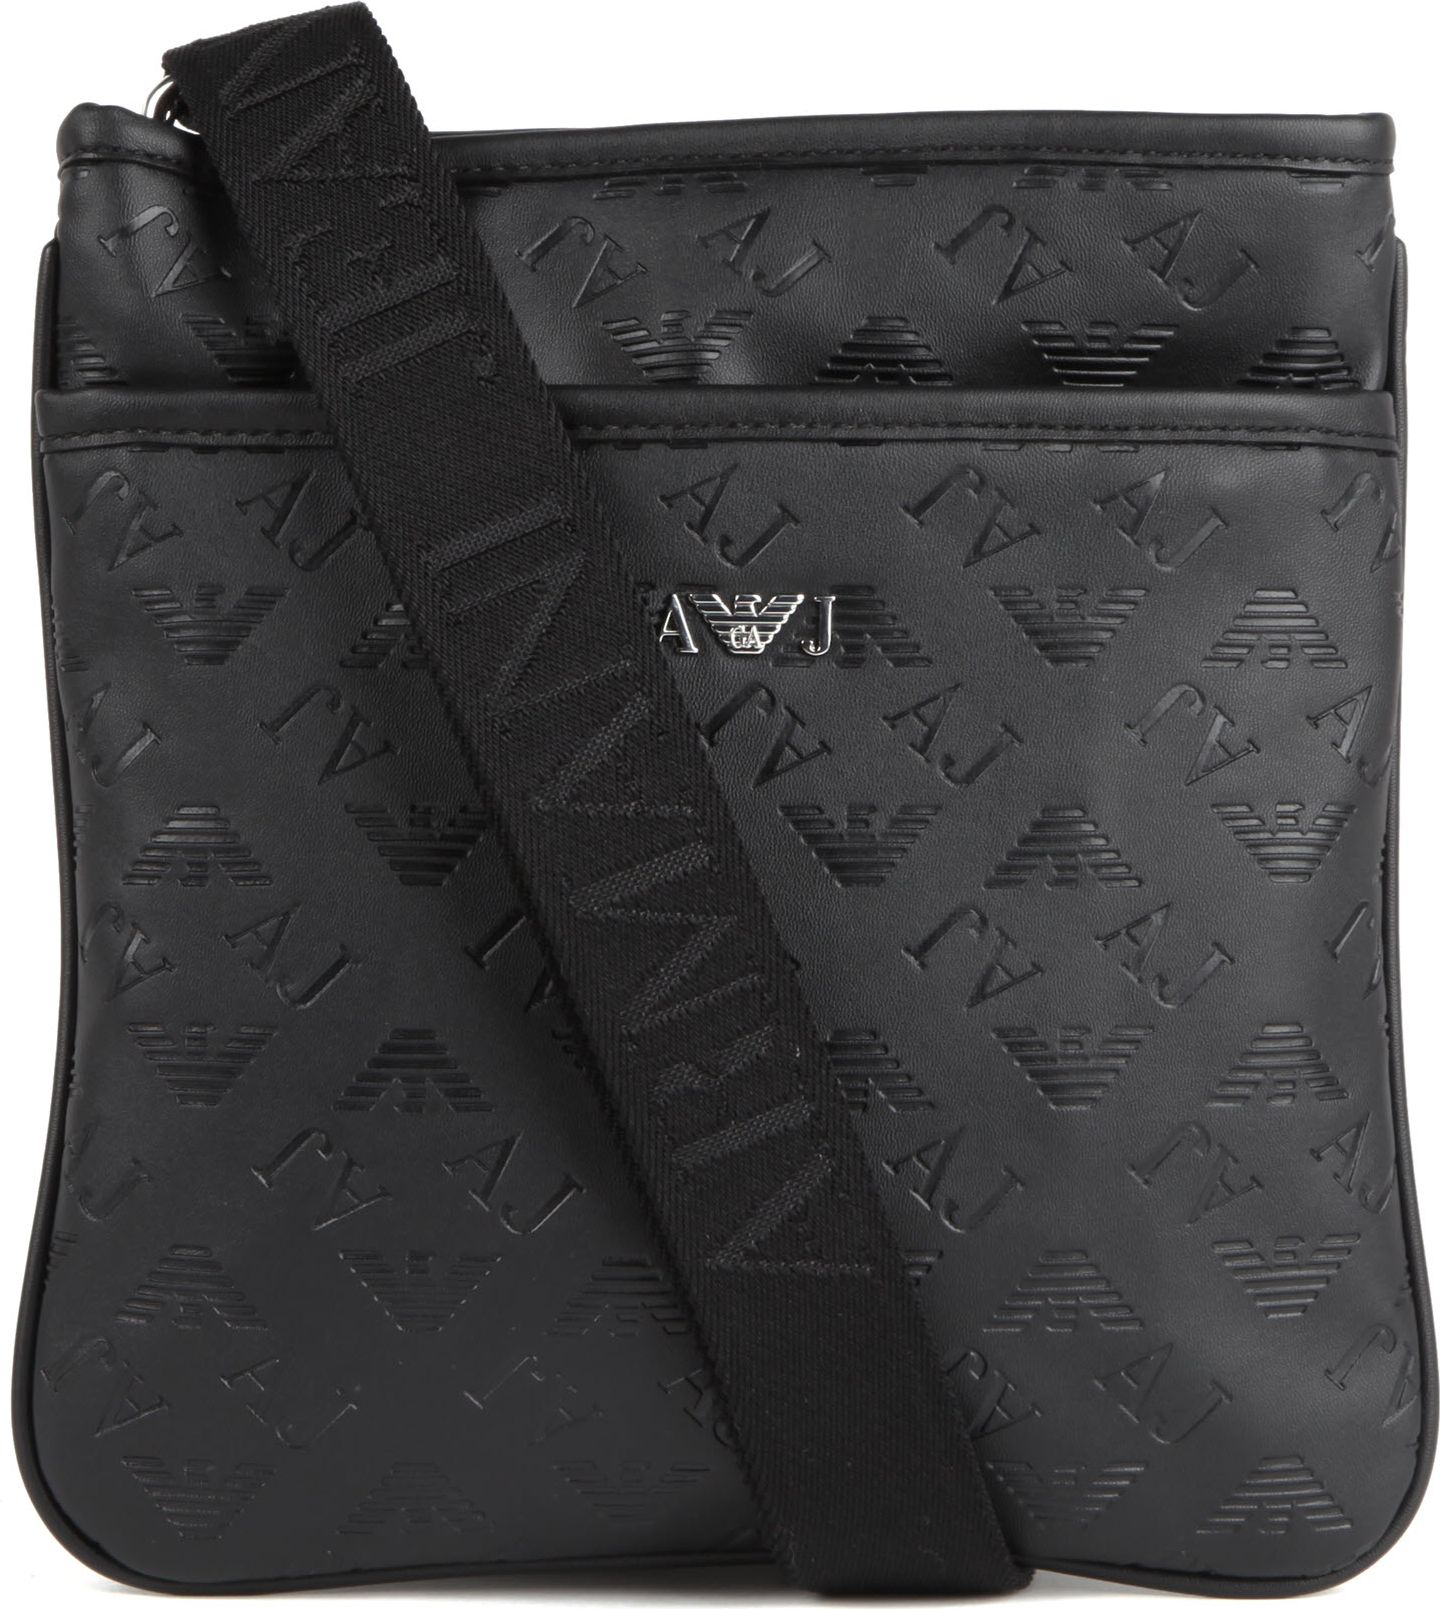 ccbb17be68 Armani Jeans Fauxleather Messenger Bag in Black for Men - Lyst